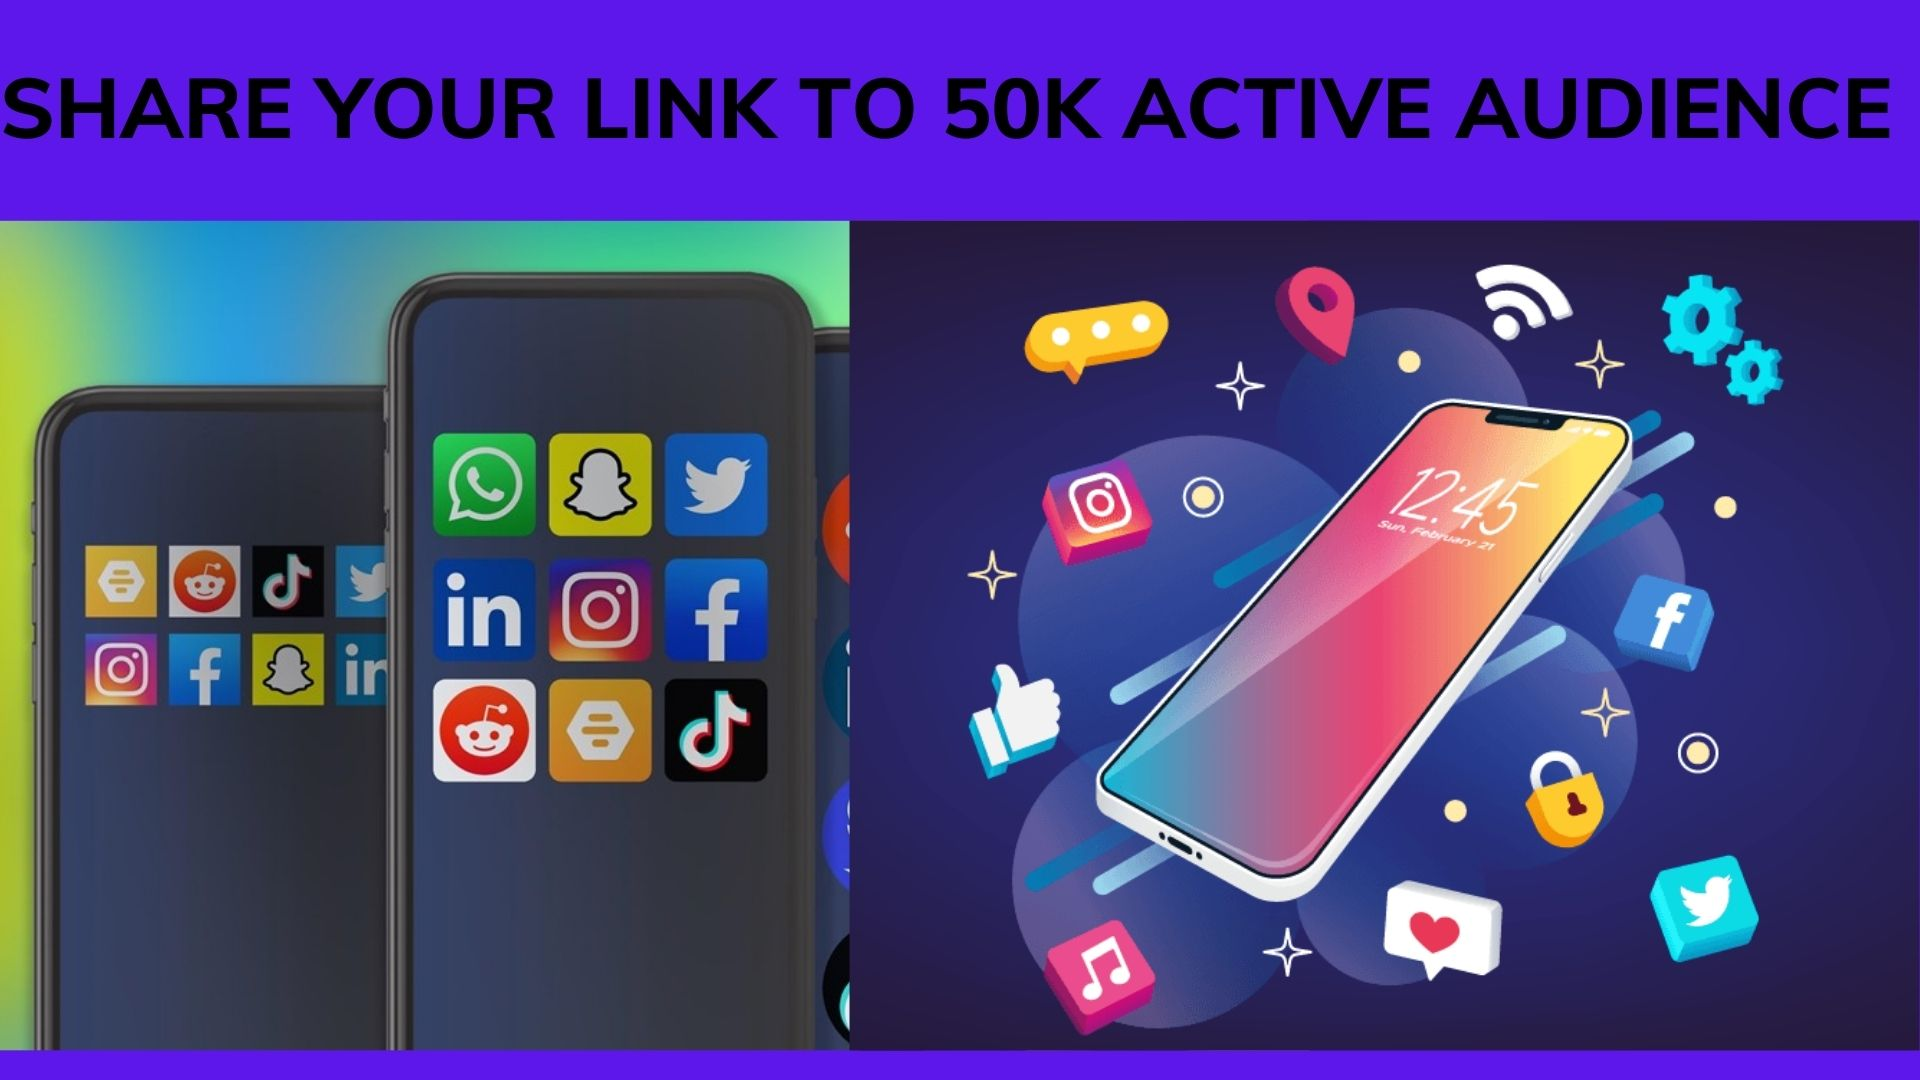 I will share your link, affiliate referral link to 500k social media, FiverrBox